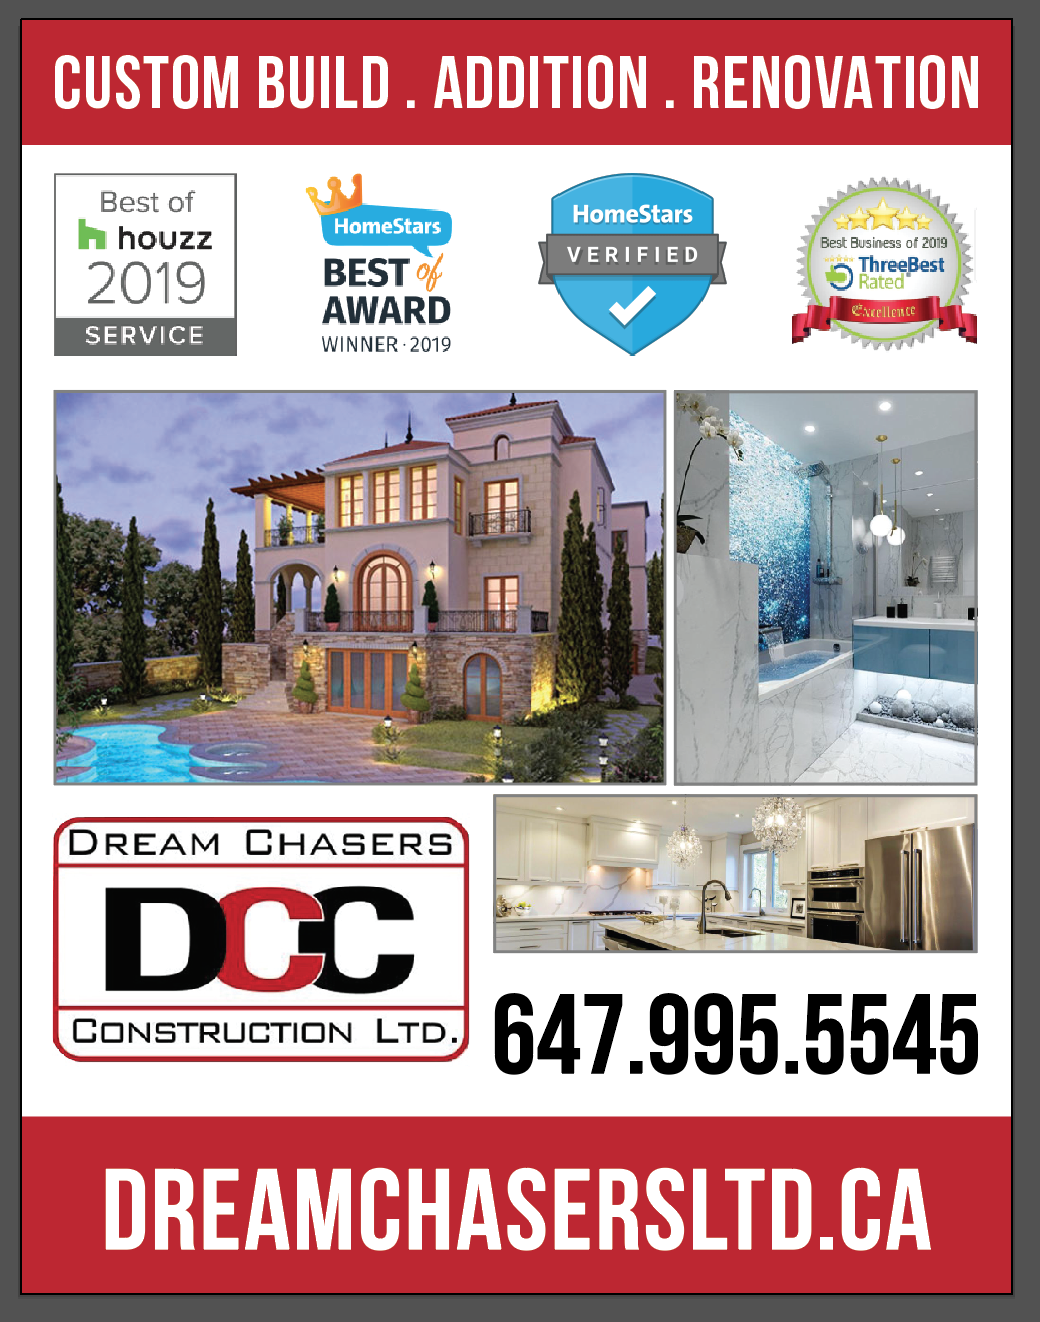 Services offered by Dream Chasers Construction